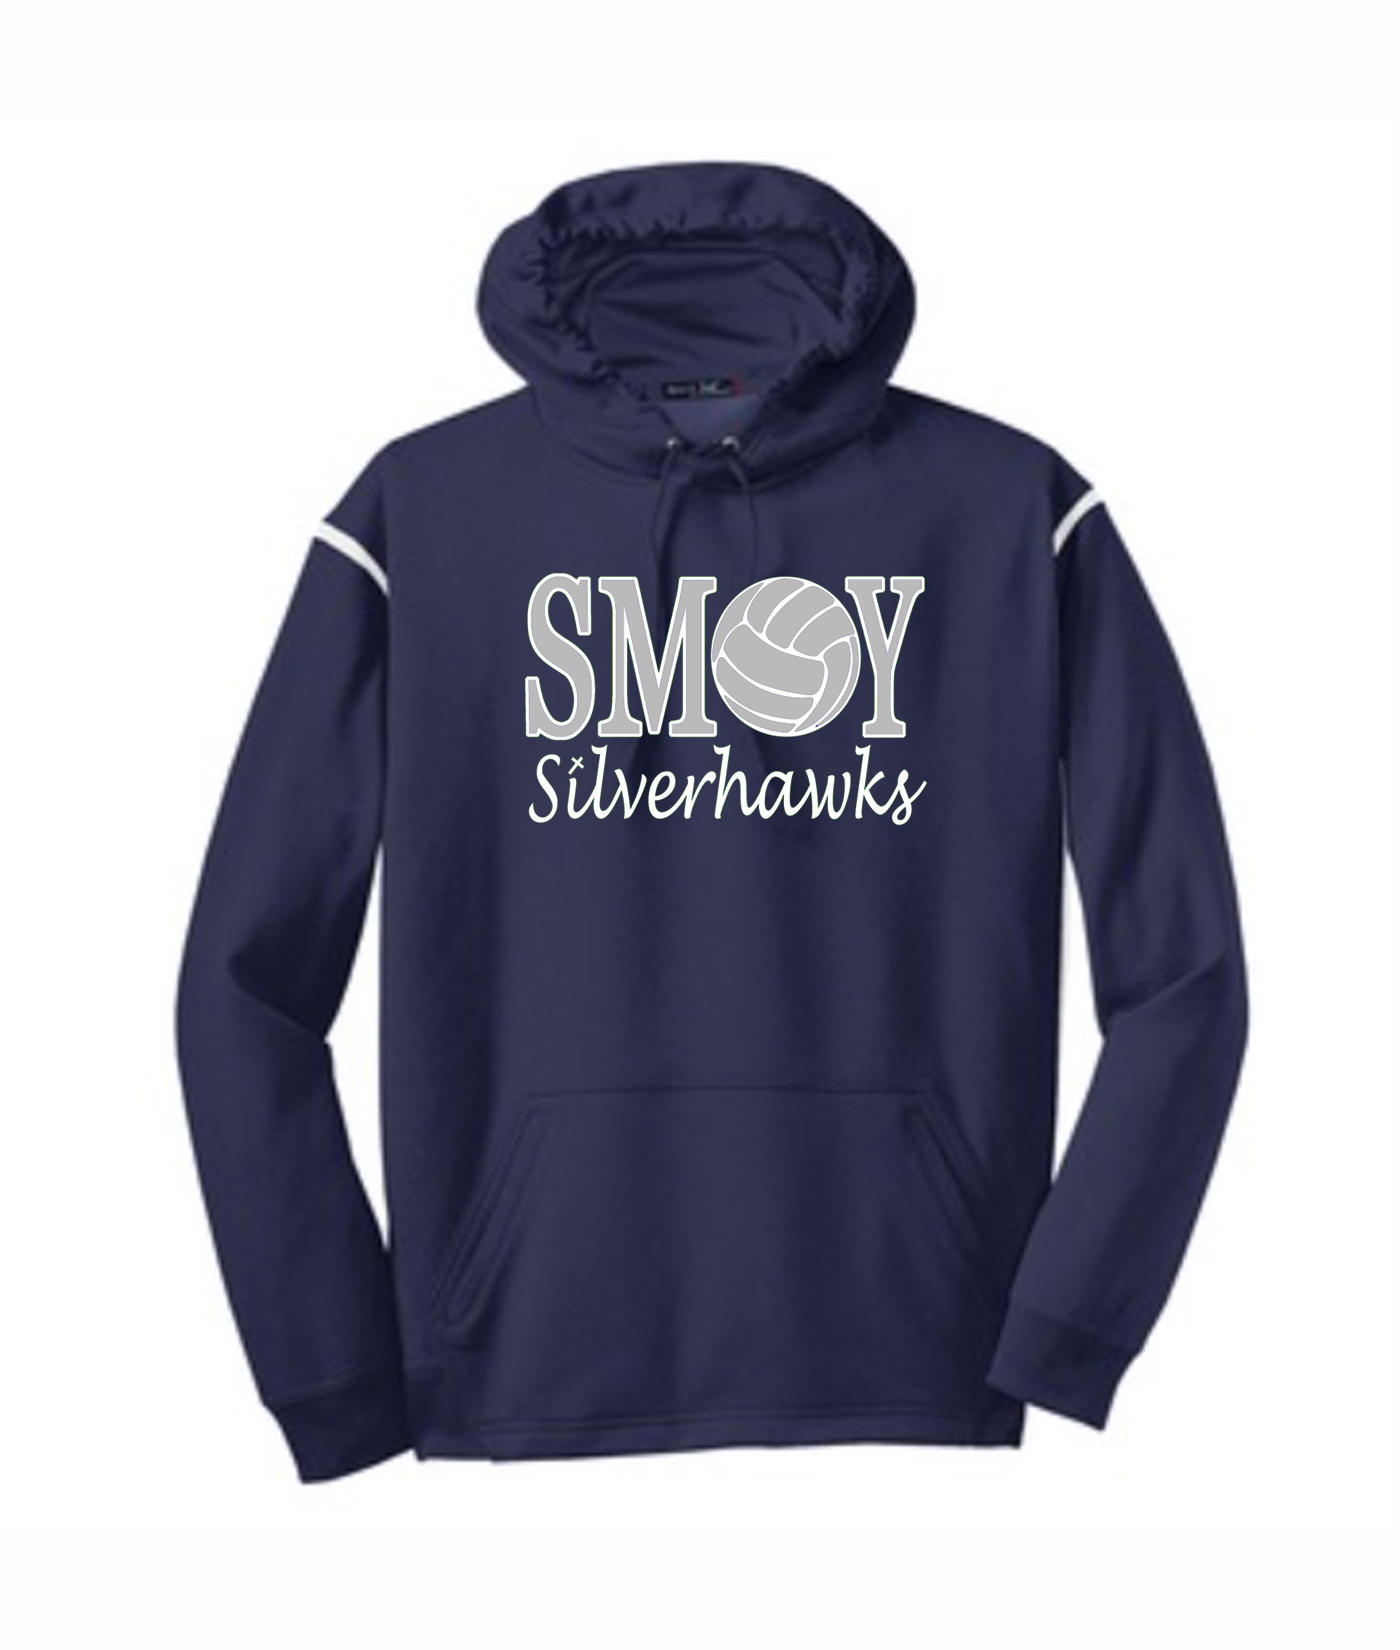 Sport Tek Volleyball O Navy Hoodie Spirit 2 Share Llc So throw in the activewear as you dress into compression shirts, hoodies, leggings, and yoga pants and follow these quarantine activewear trends while on lockdown. spirit 2 share llc